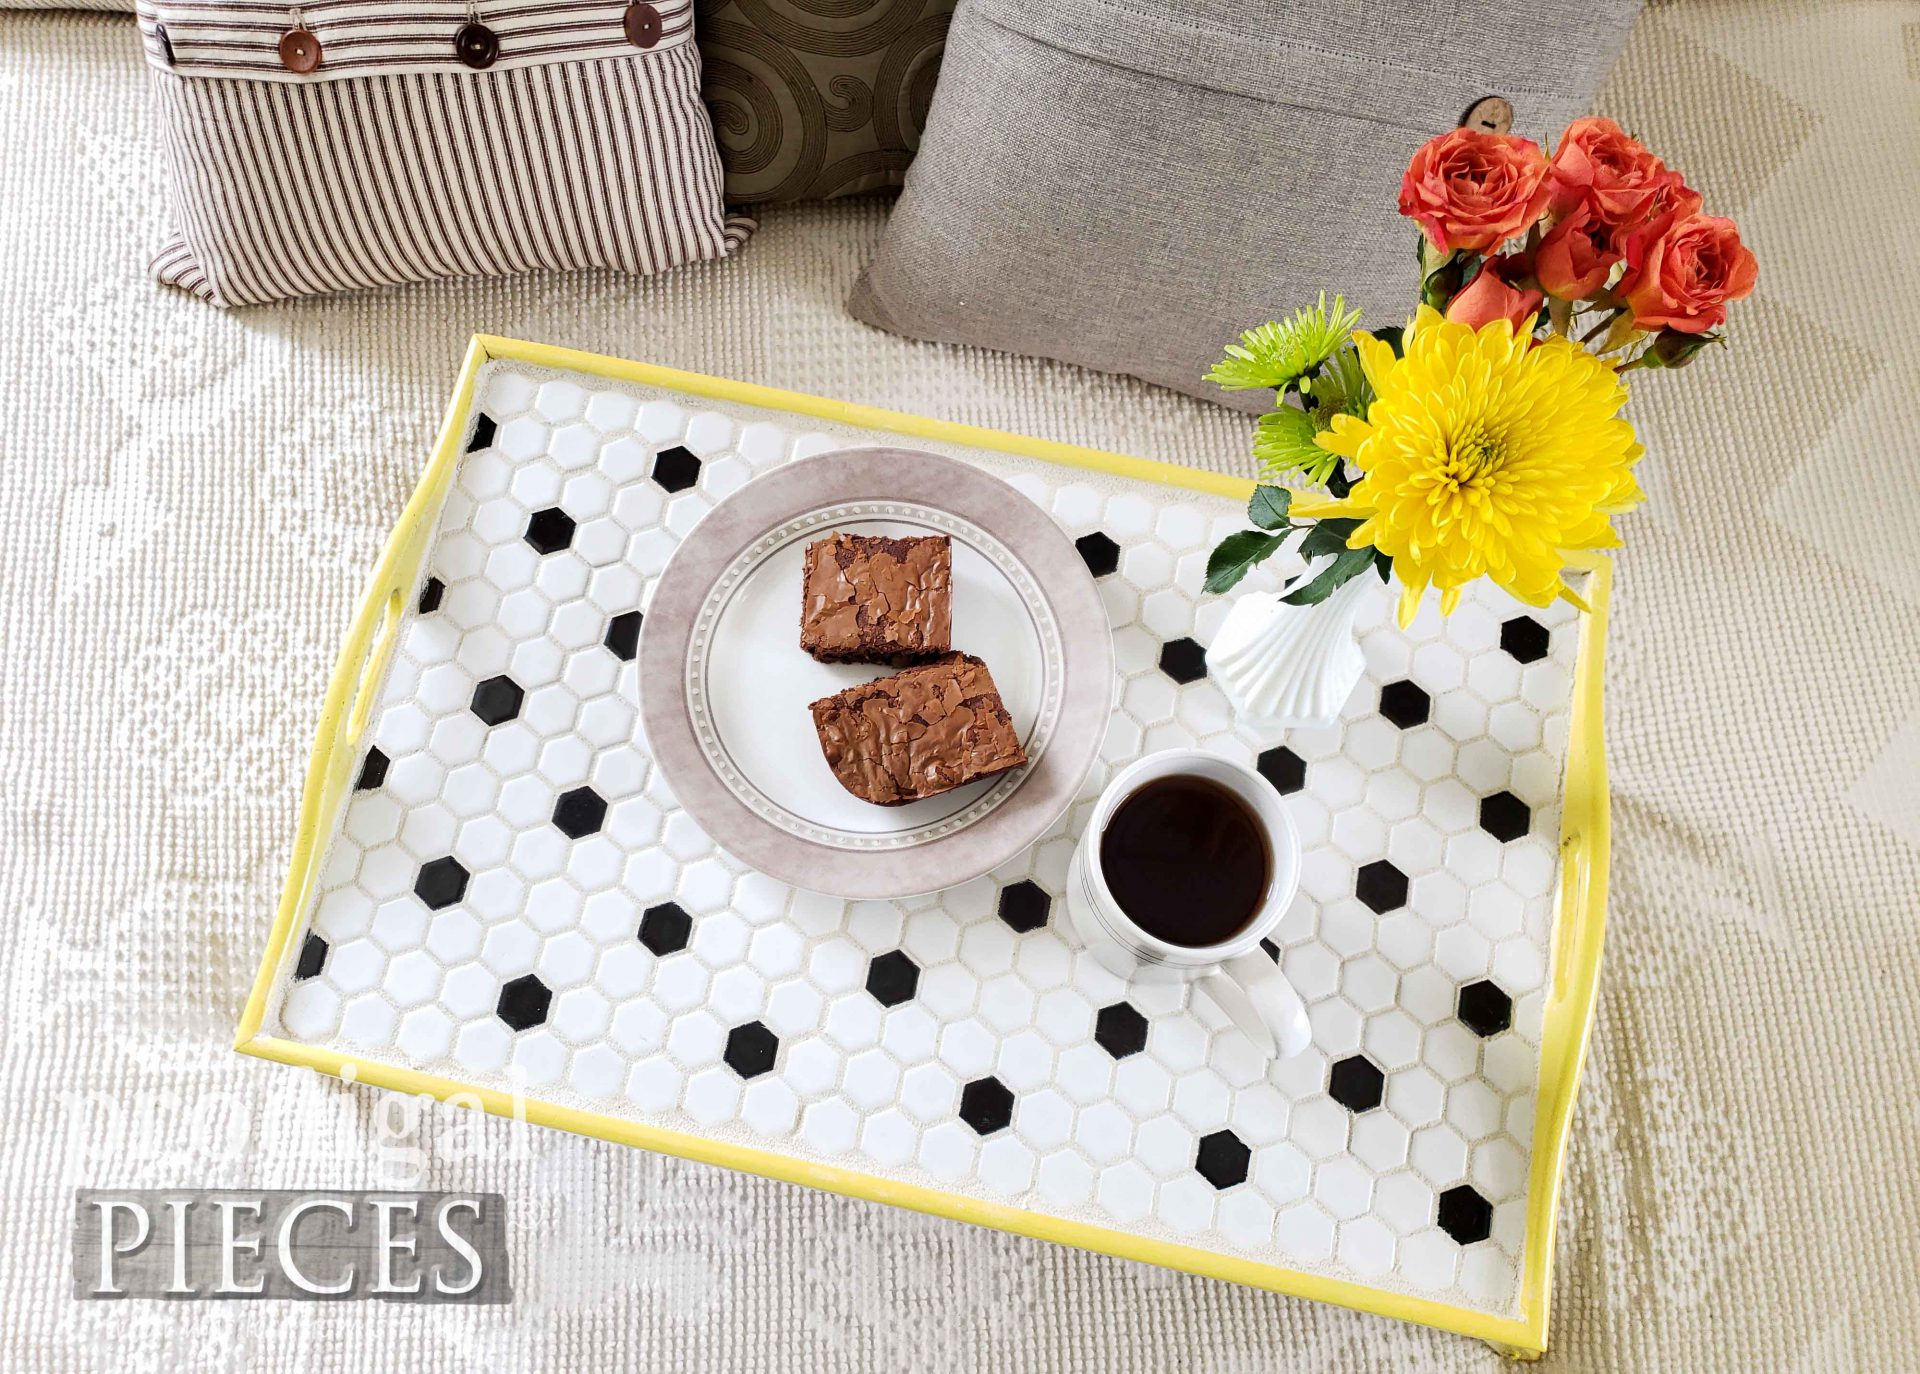 Top View Tiled Tray by Larissa of Prodigal Pieces | prodigalpieces.com #prodigalpieces #vintage #diy #home #homedecor